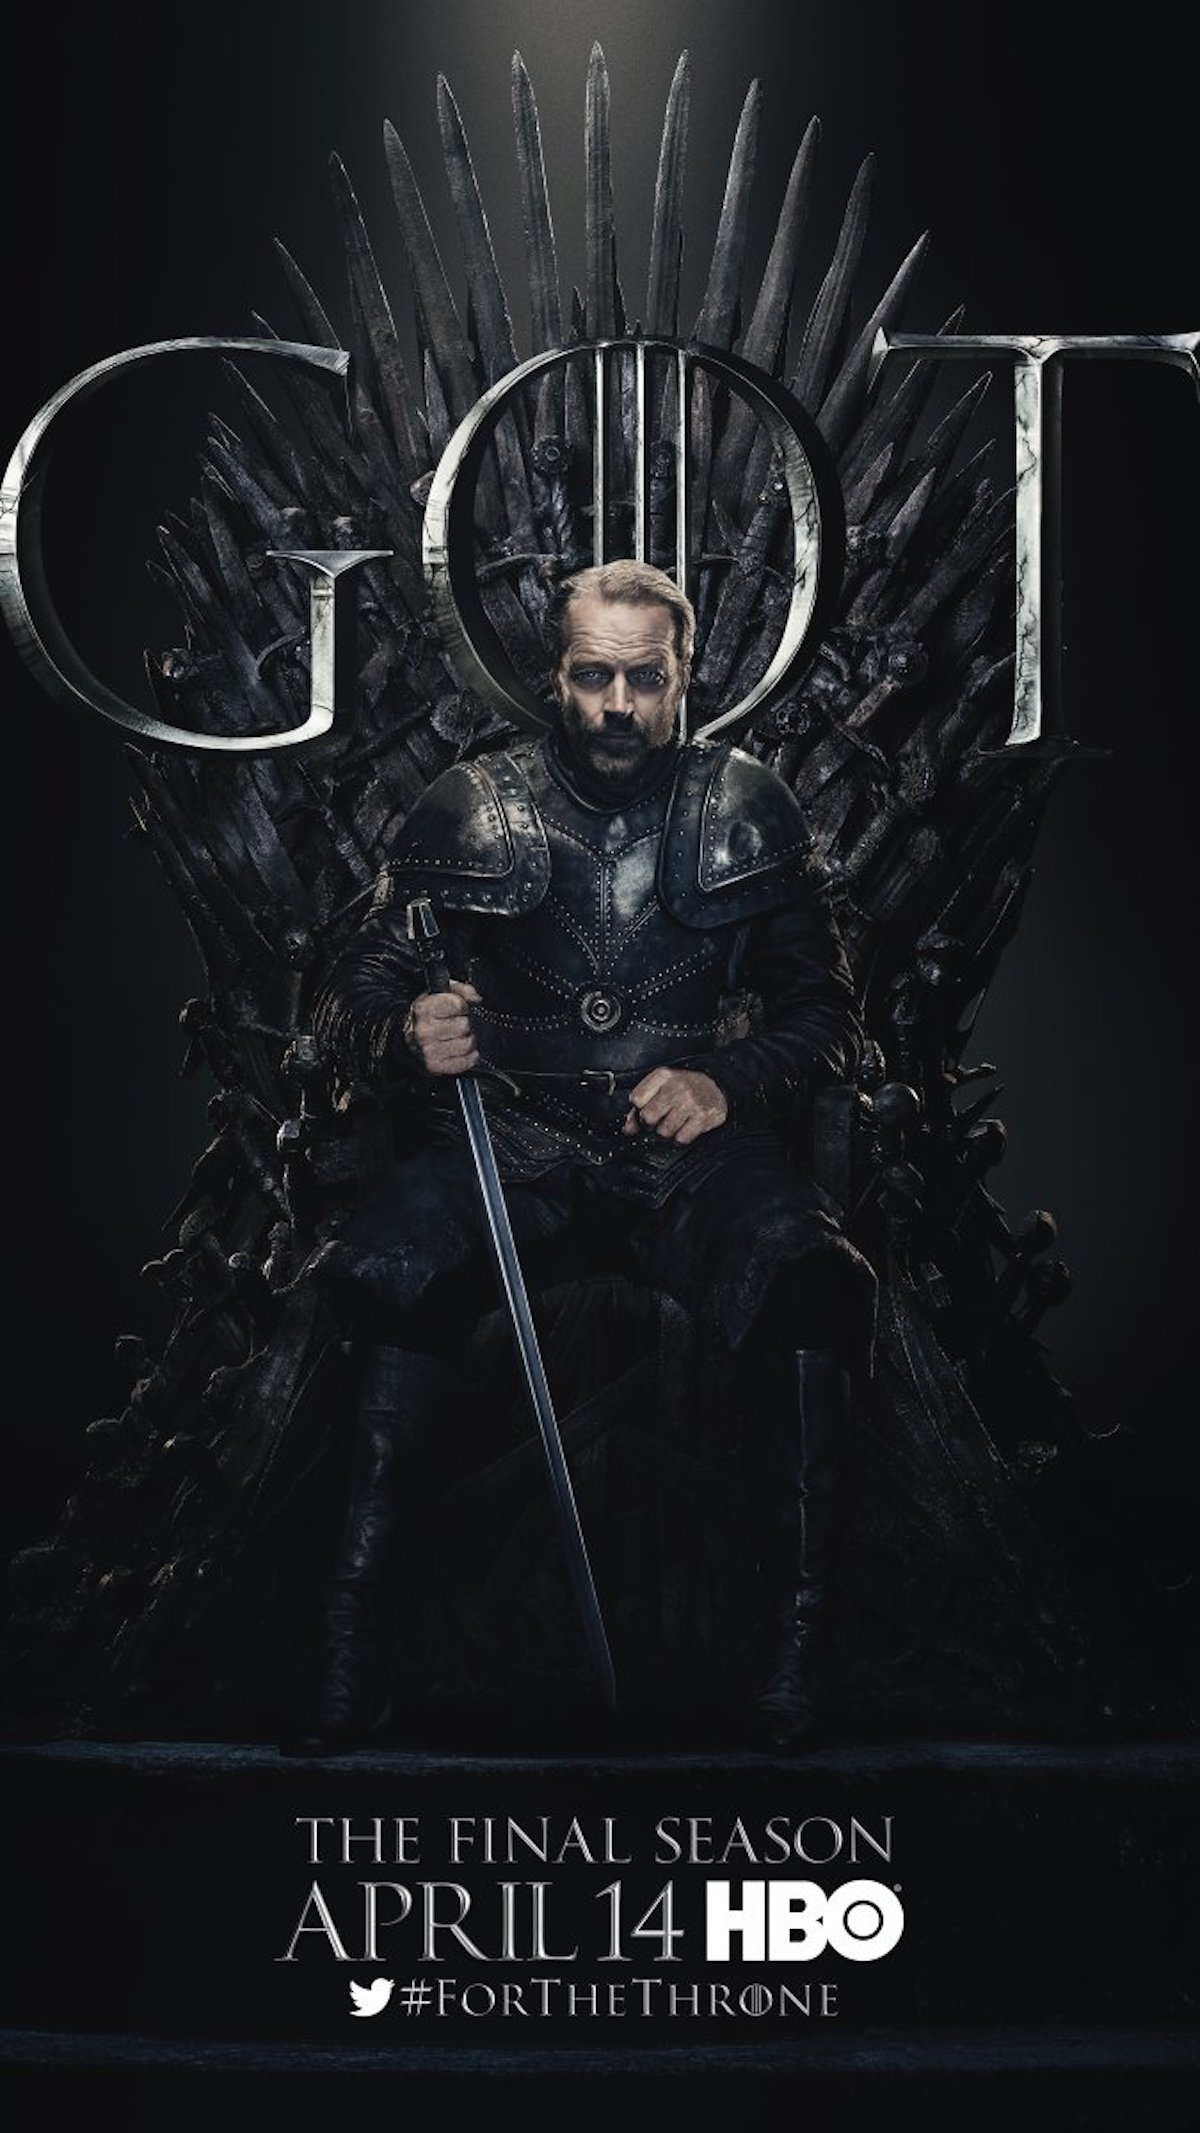 GAME OF THRONES Releases New Iron Throne Character Posters and Twitter Emojis_12